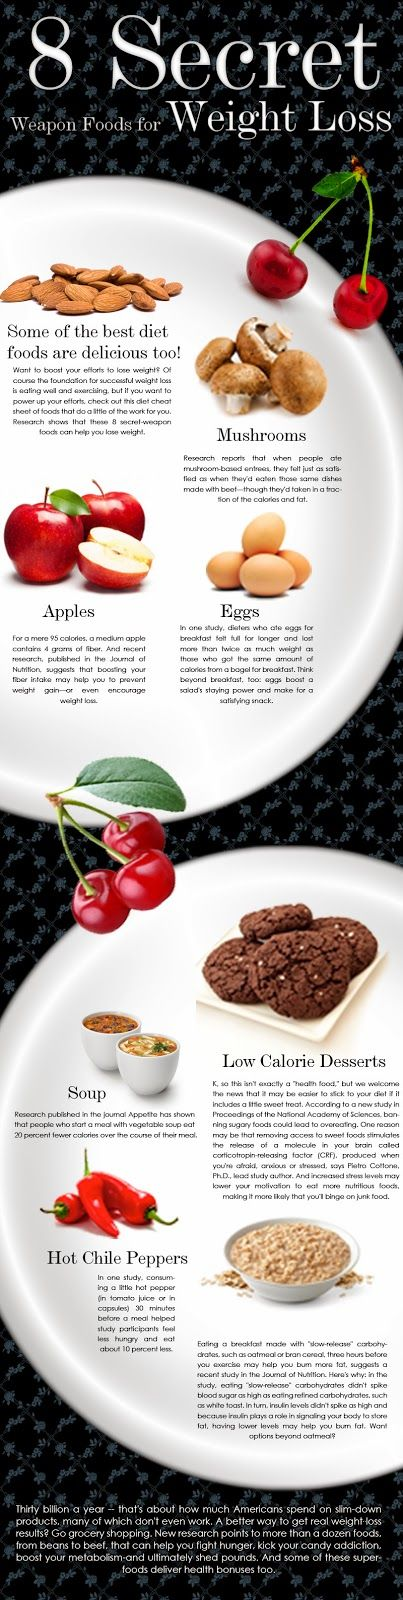 Weight Loss Foods - 8 Secret Weapon Foods [Infographic] to naturally lose weight